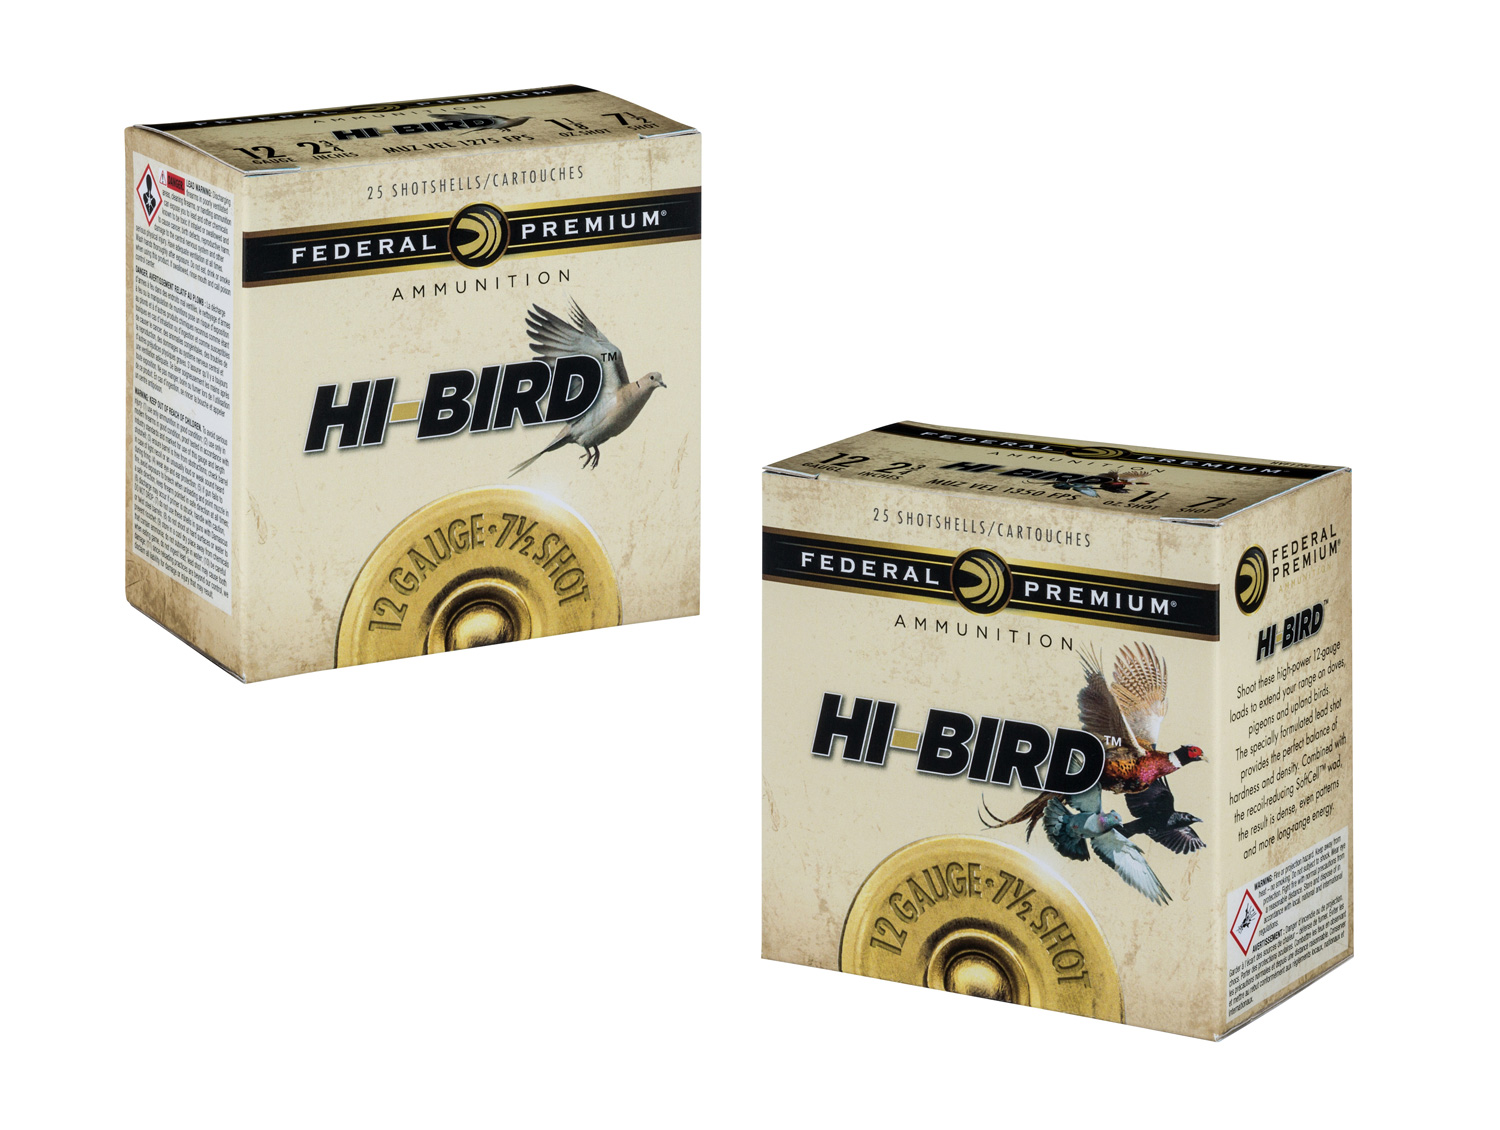 Federal Hi-Bird shotshells box